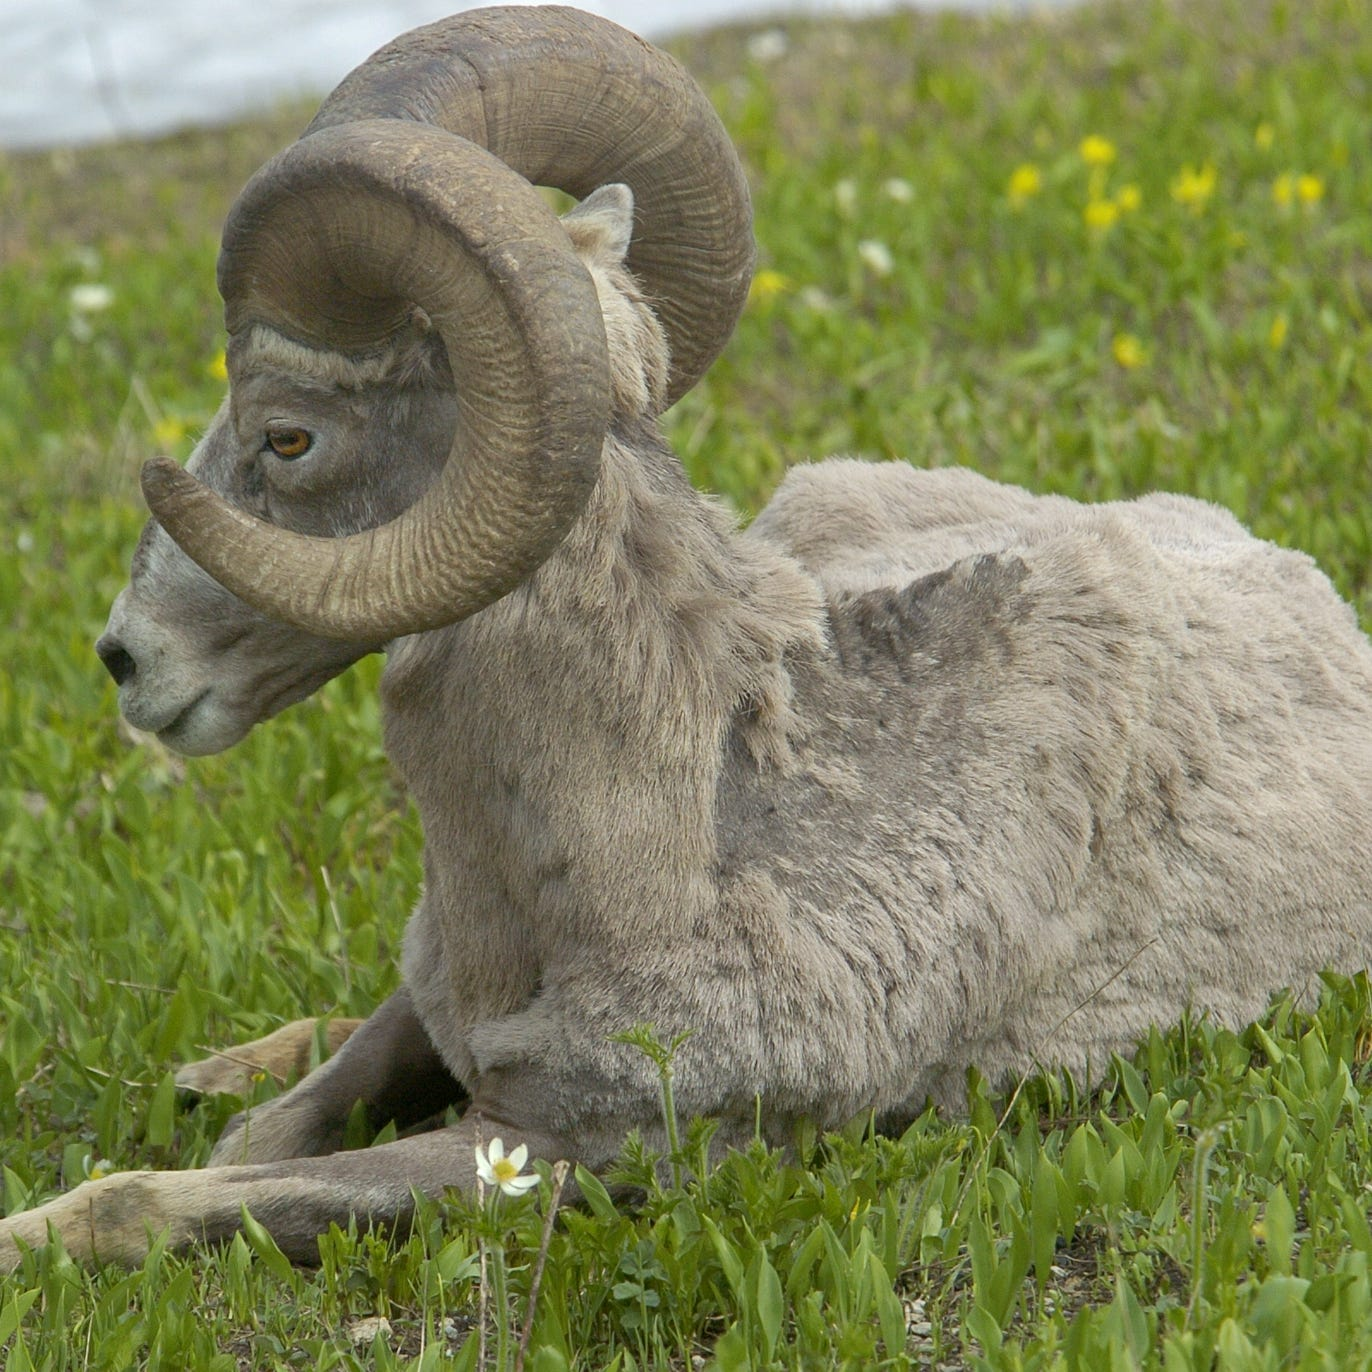 New law allows recovery of bighorn sheep horns, skulls